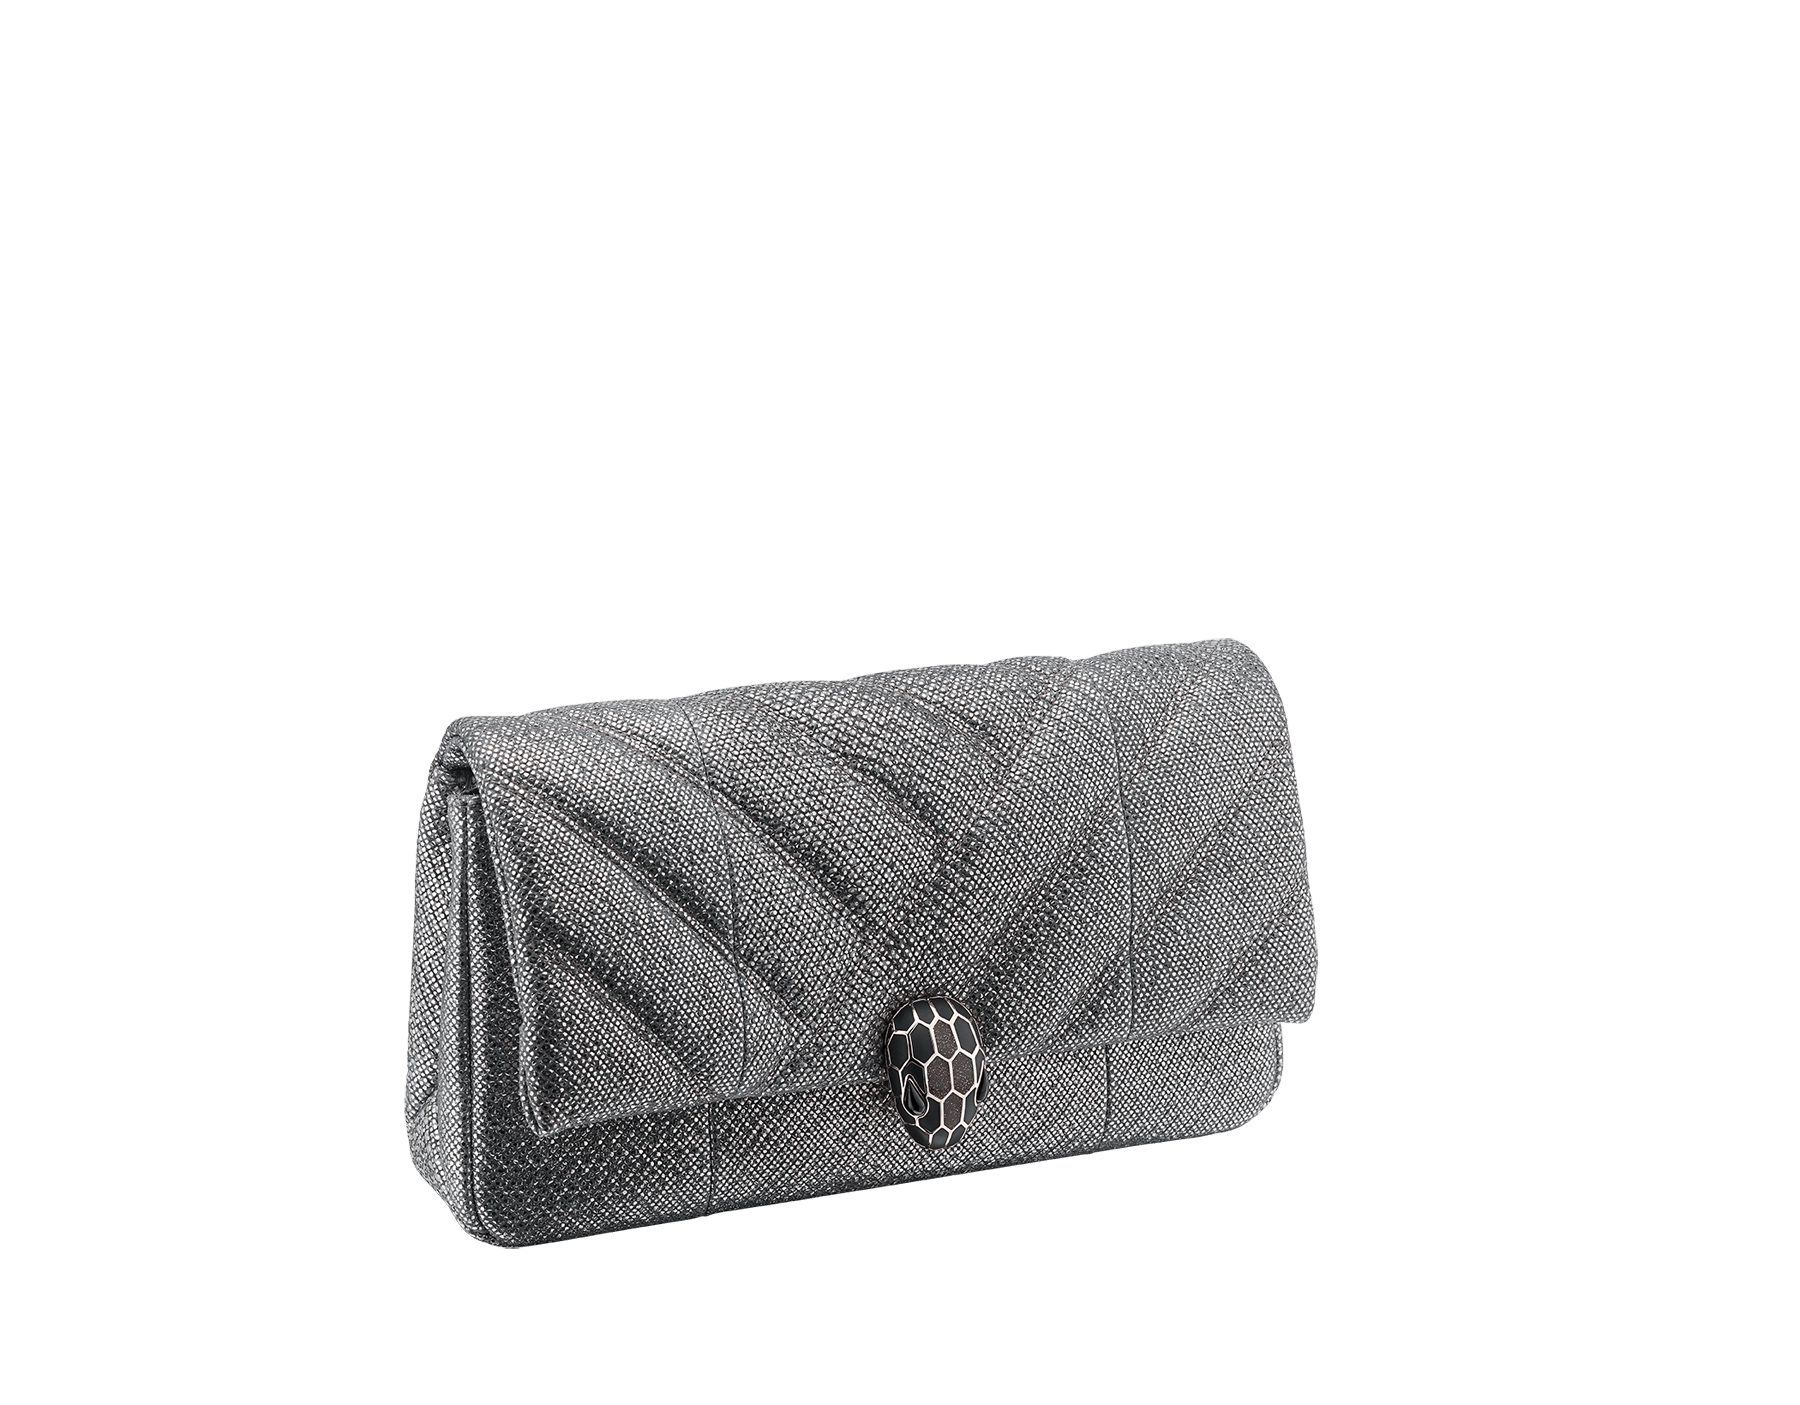 Serpenti Cabochon clutch bag in charcoal diamond metallic karung skin, with a graphic motif. Brass light gold plated tempting snake head closure in black and glitter charcoal diamond enamel and black onyx eyes. 289303 image 2